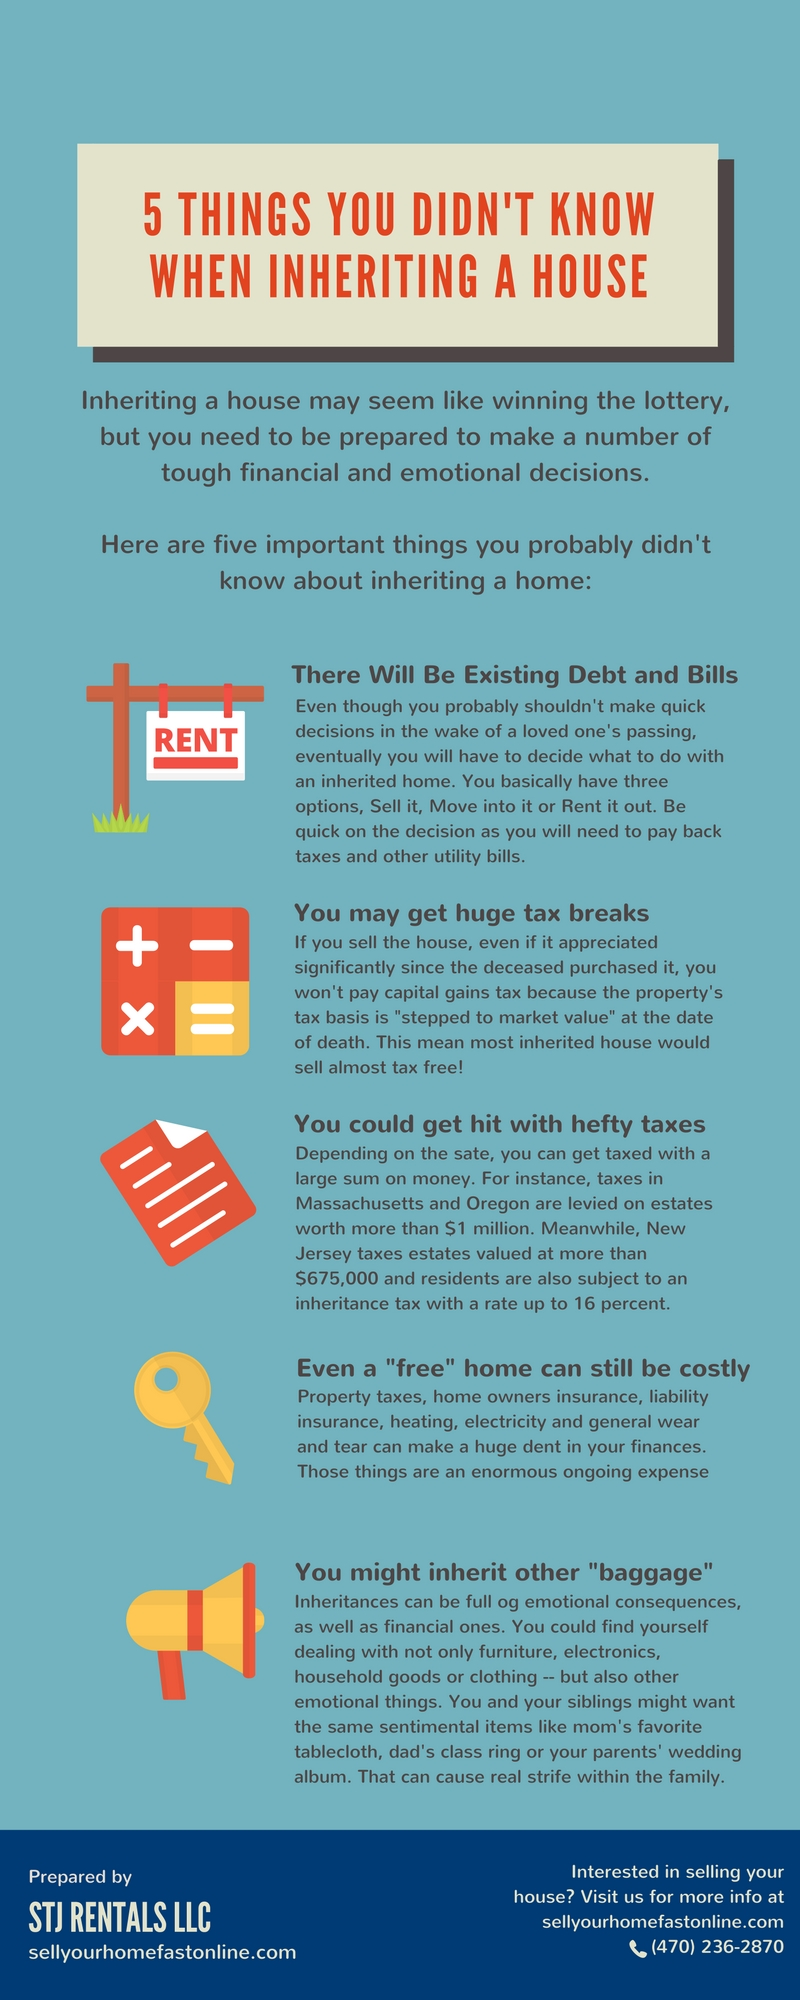 5 things you didnt know when inheriting a house